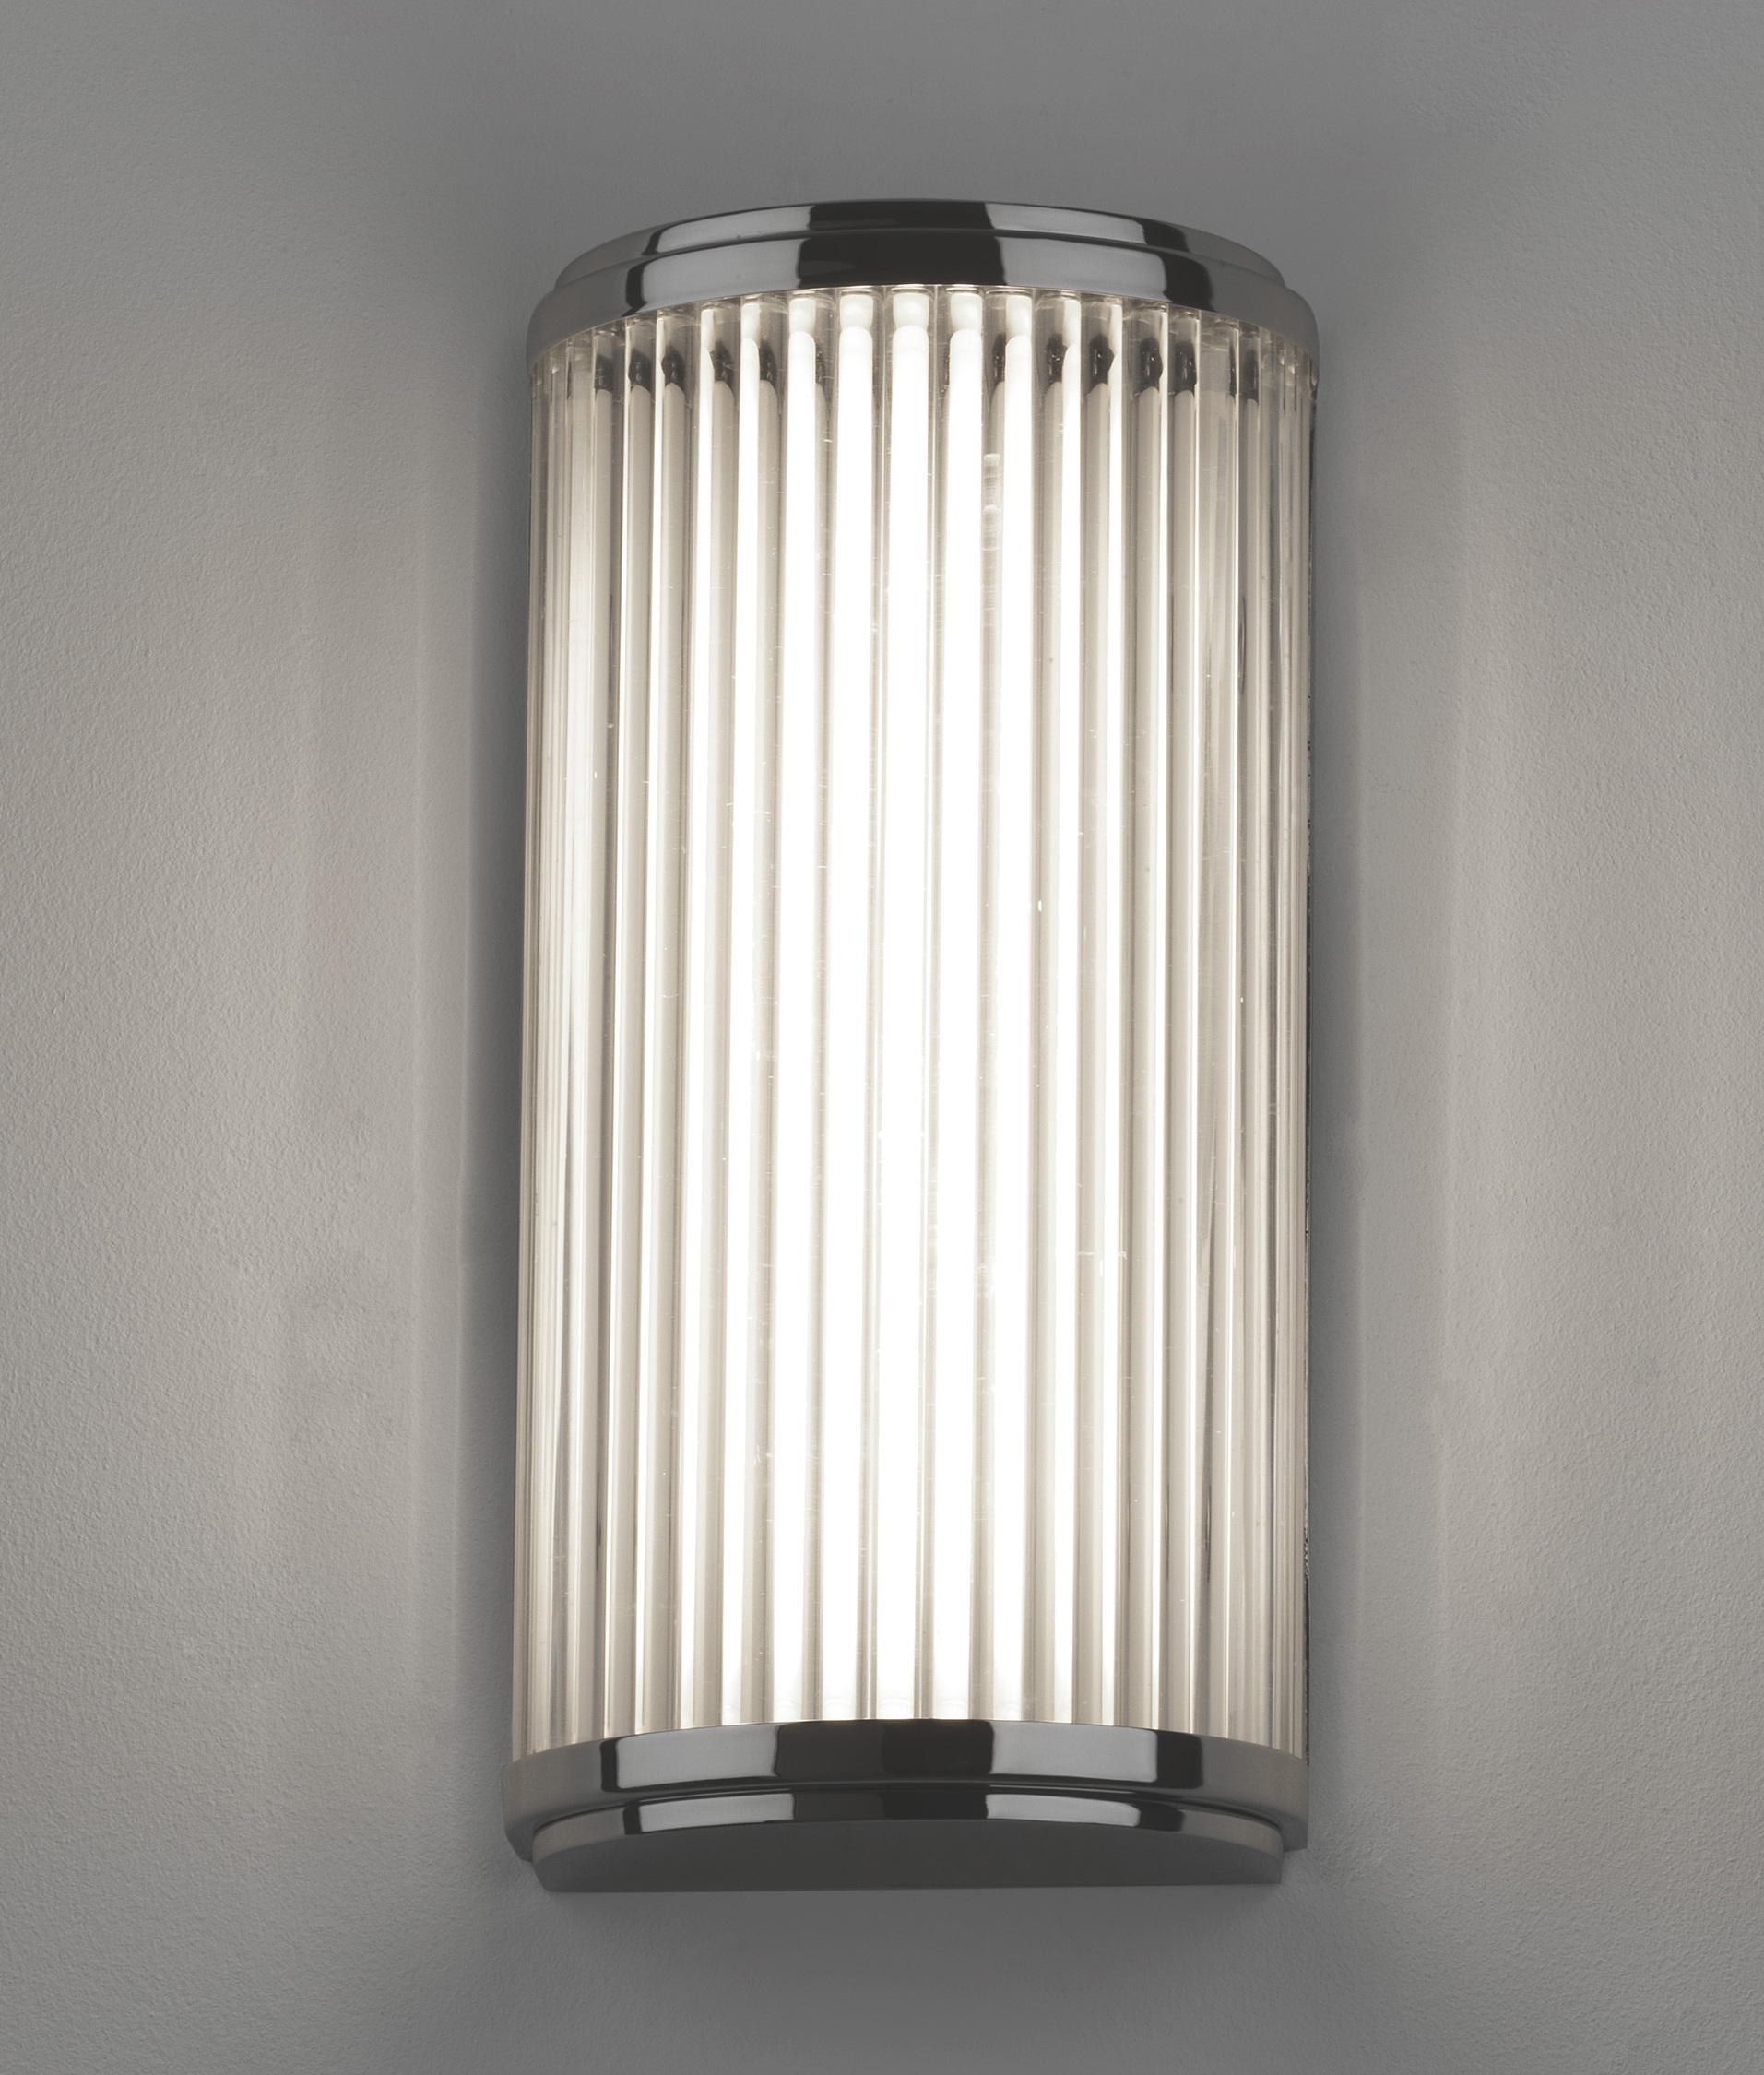 Ribbed Glass Wall Lights : LED IP44 Wall Light - Glass Rods H:250mm